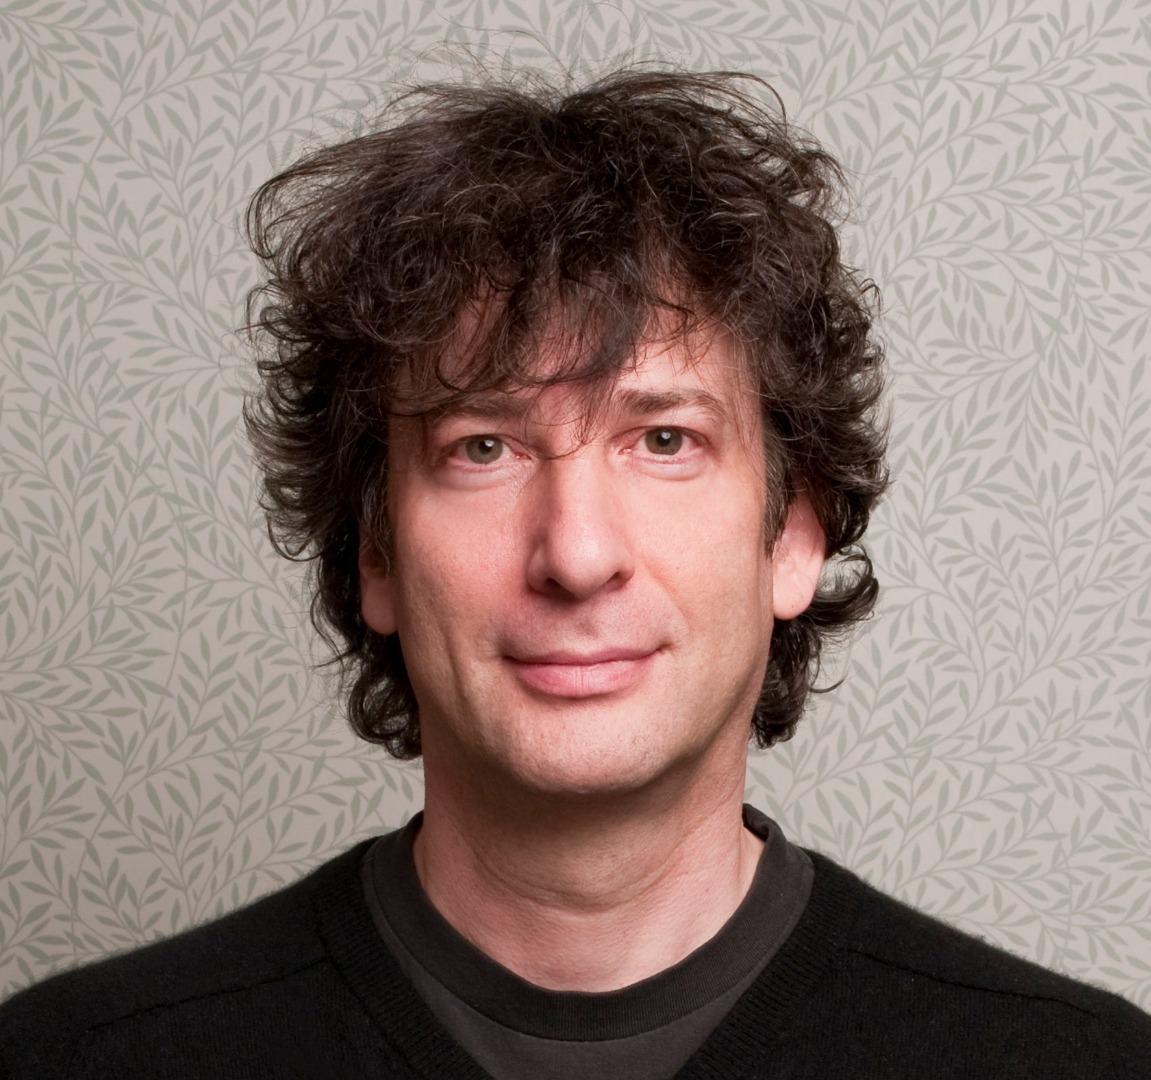 Neil Gaiman's Headshot